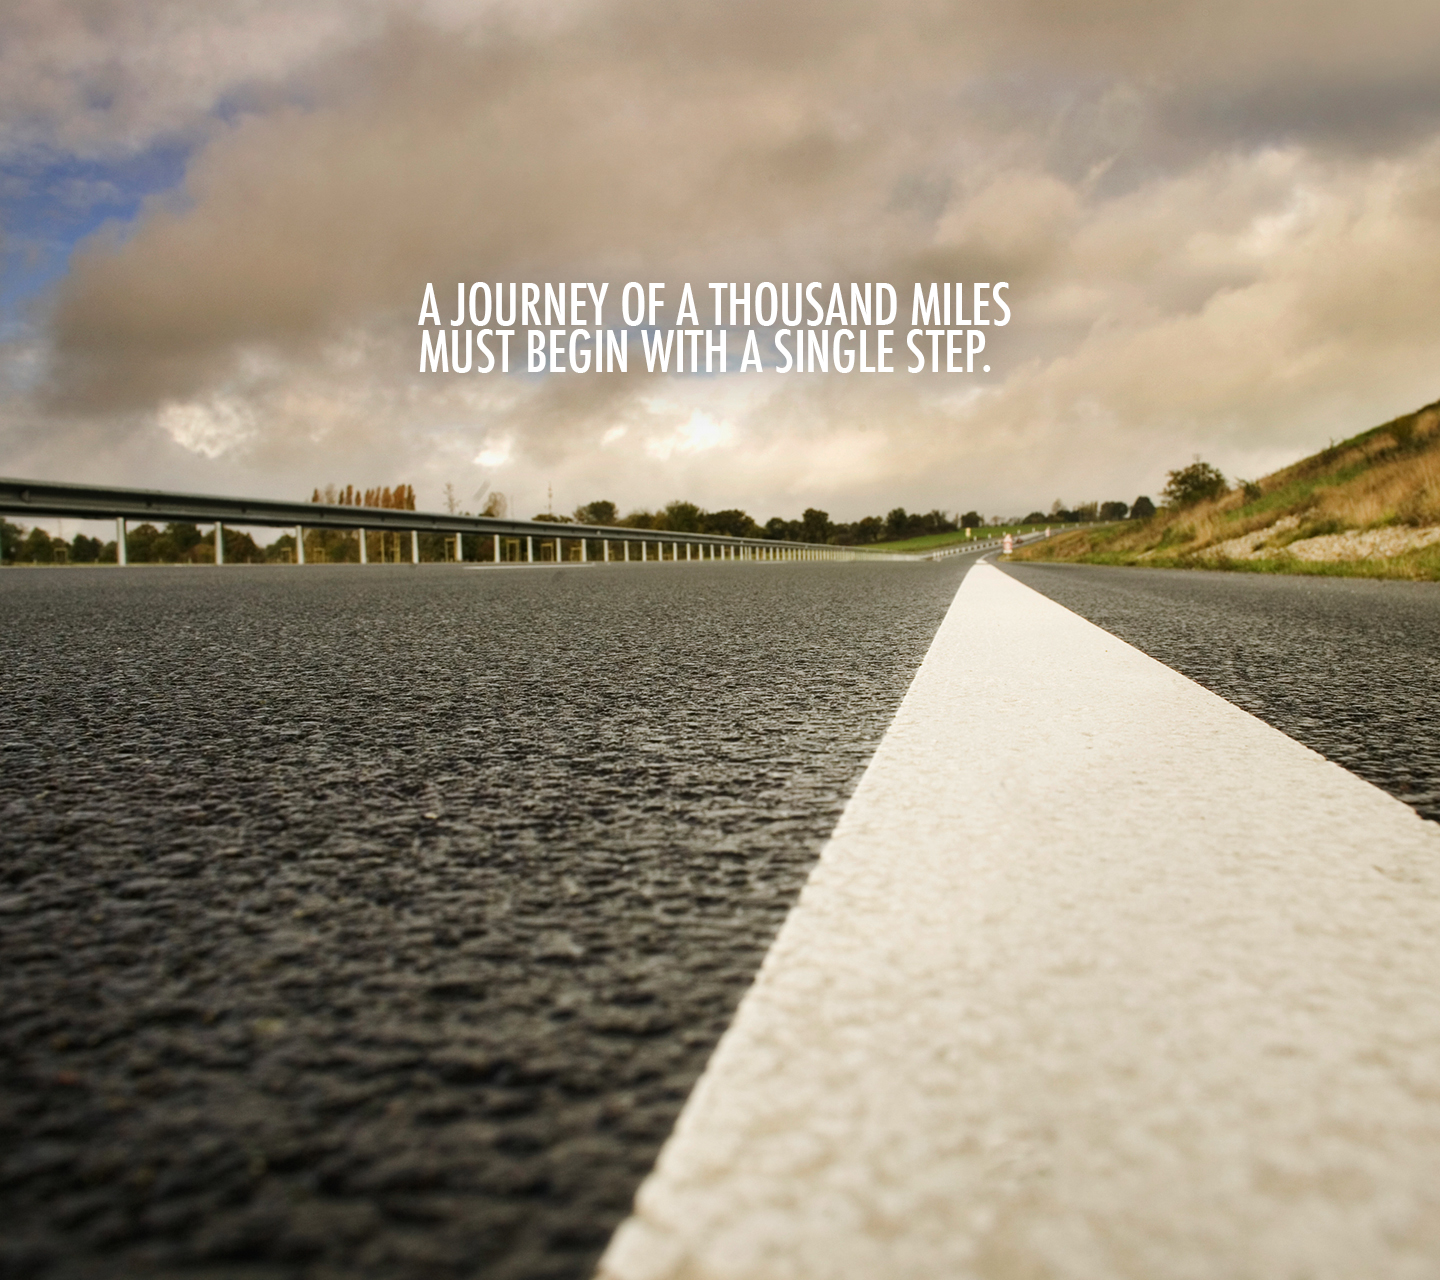 Business Inspirational Quotes Wallpaper Download A Journey Of A Thousand Miles Inspirational Quotes